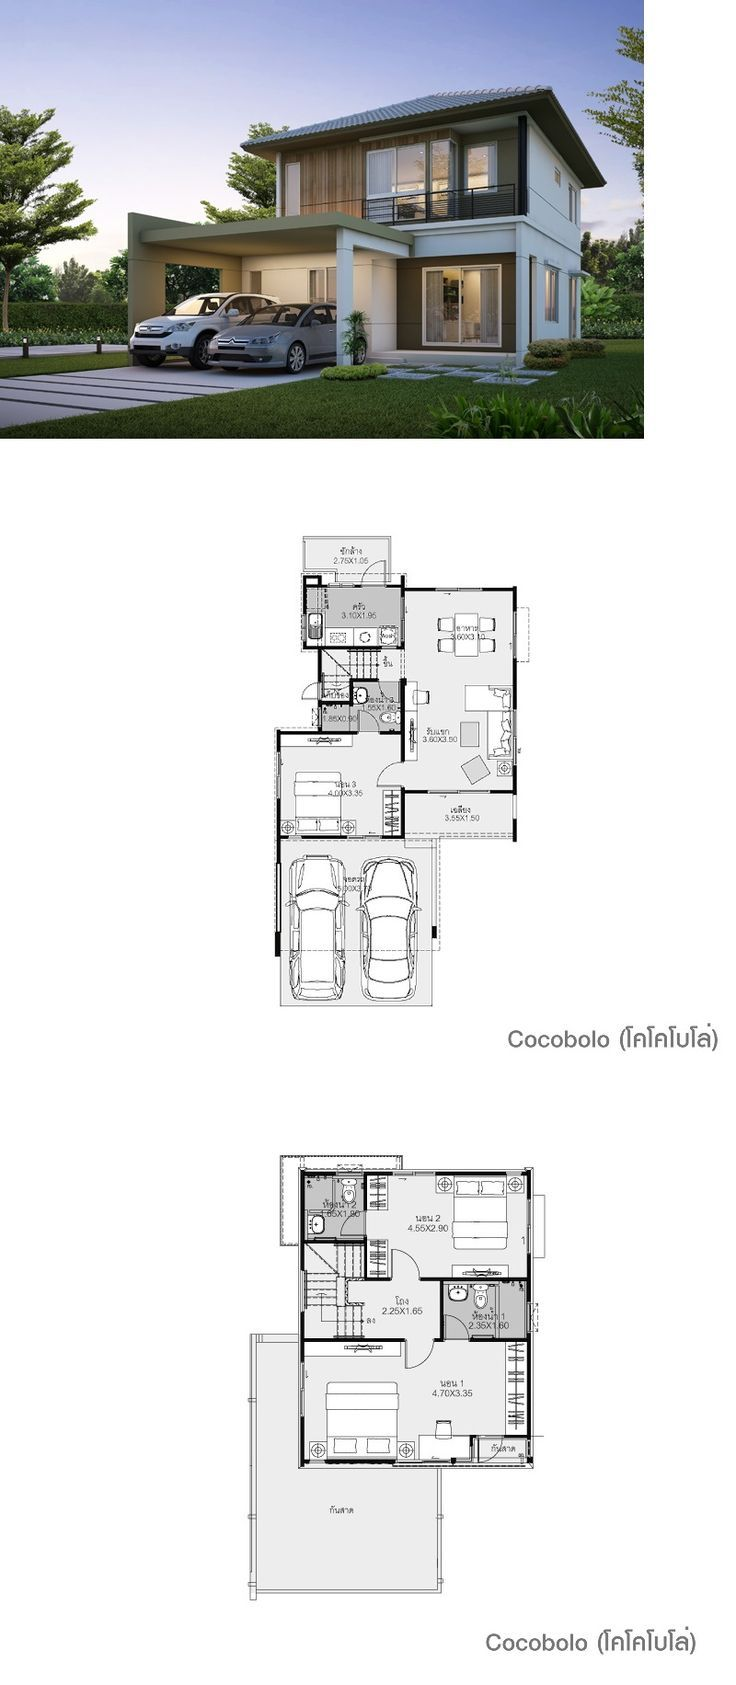 Thai house apartment plans modern house plans small house plans house floor